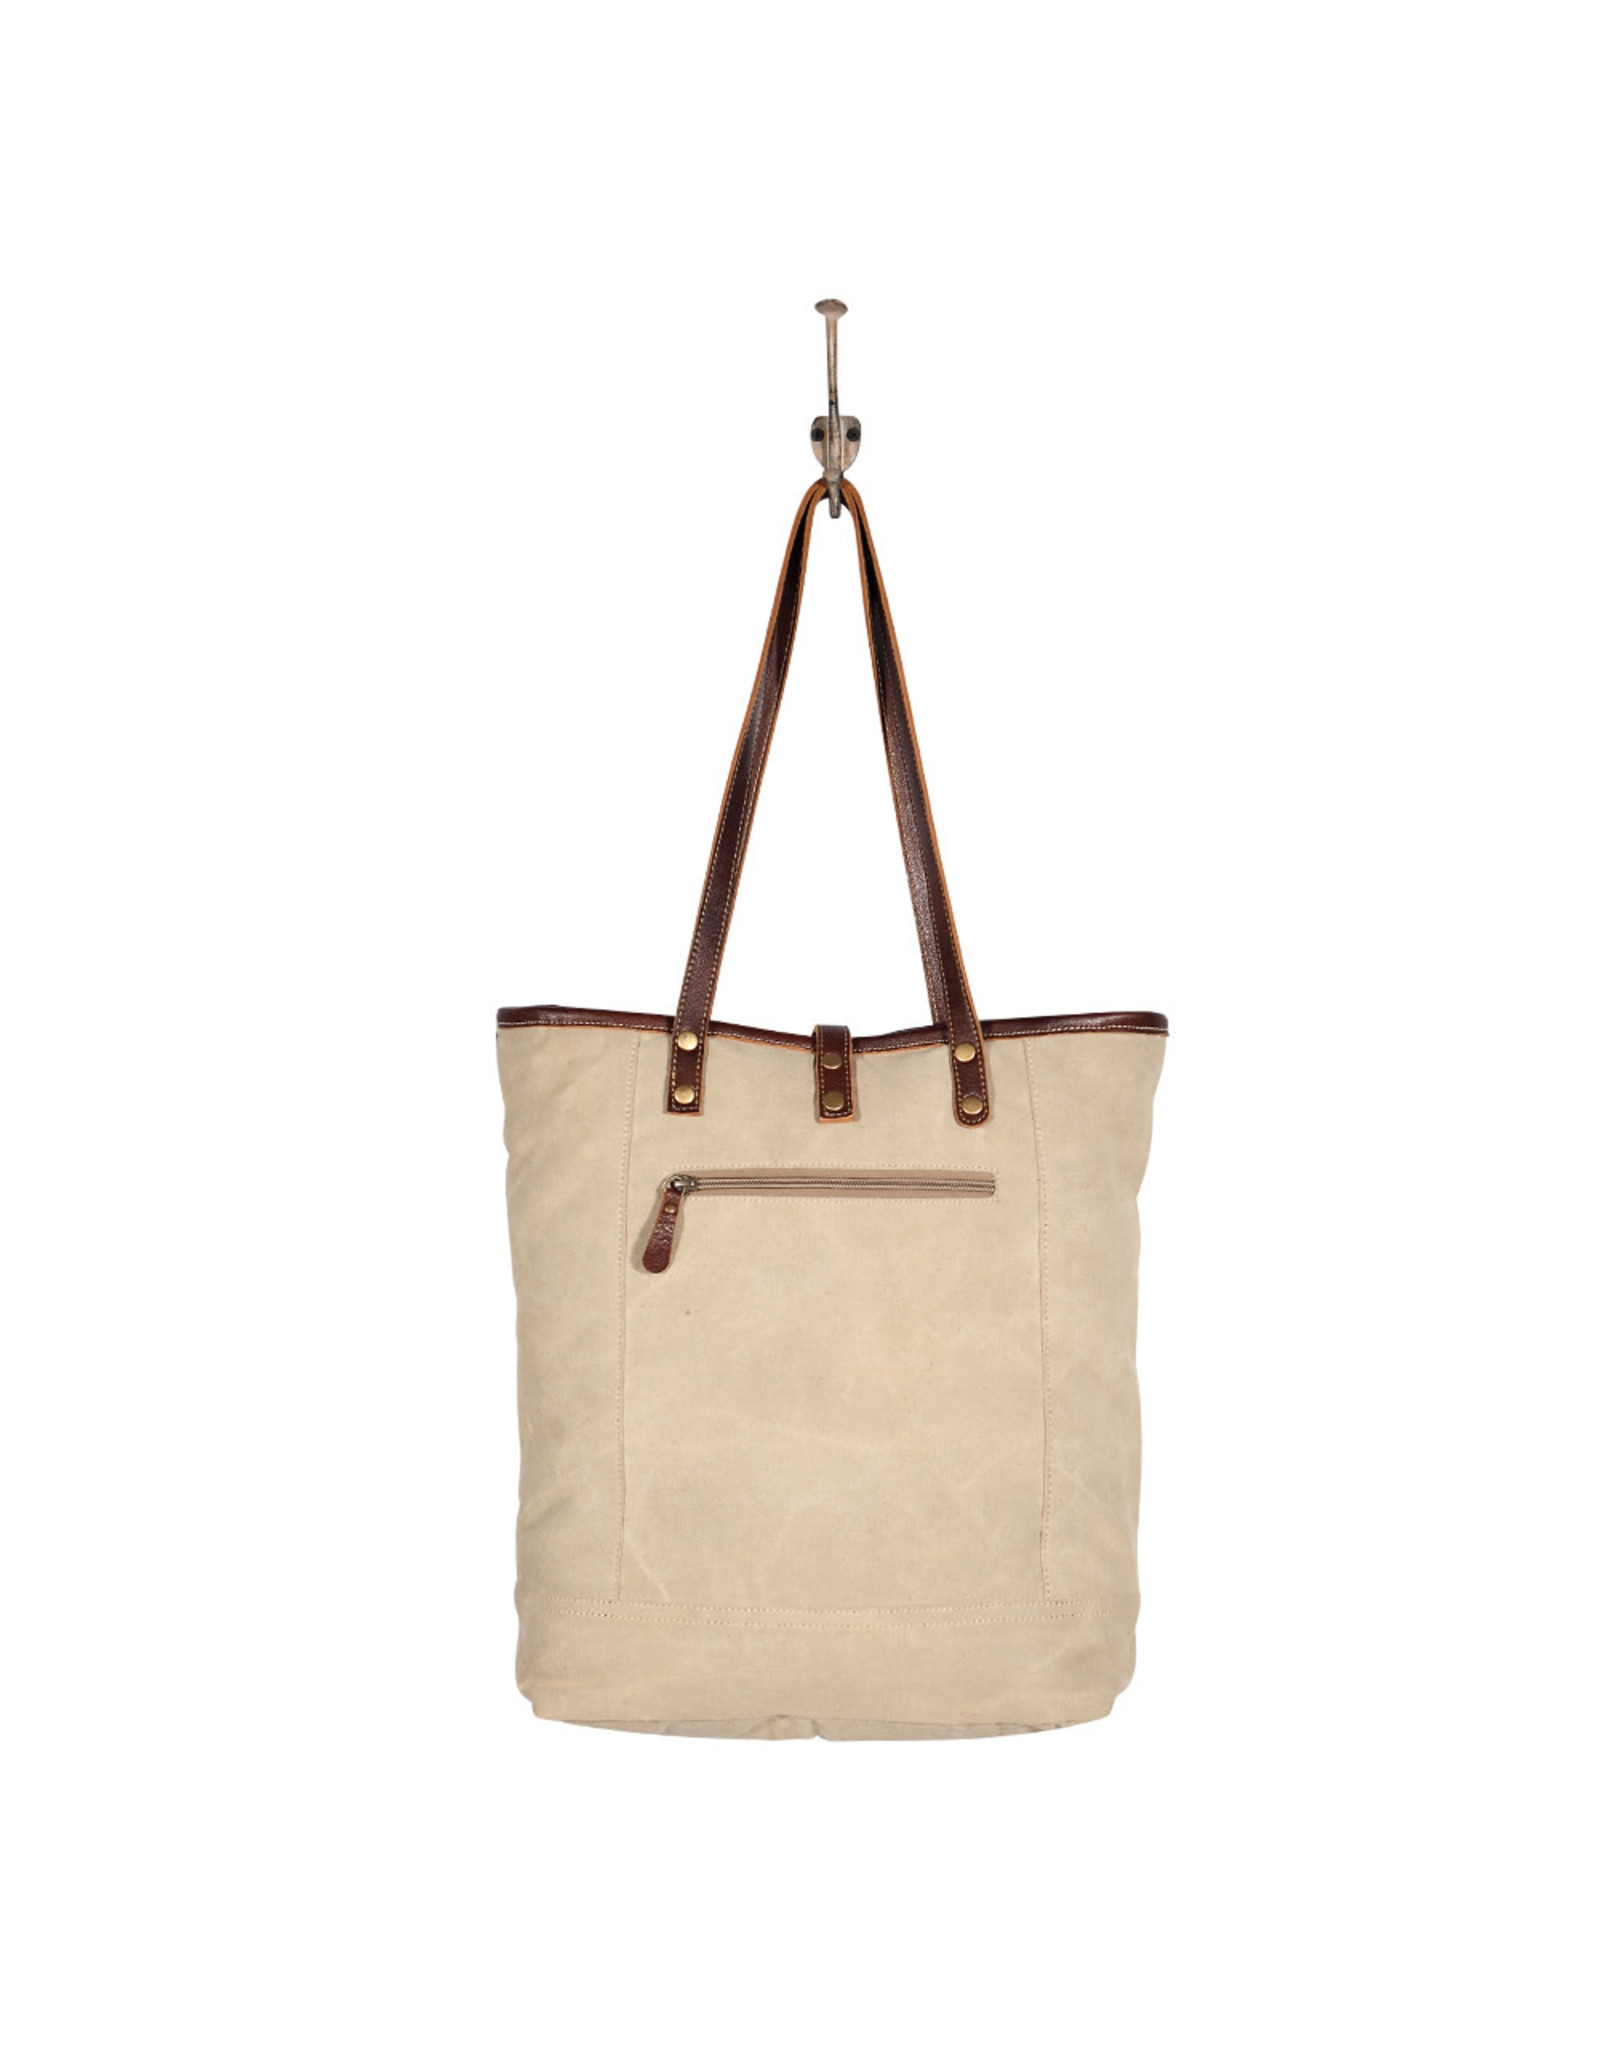 Myra Bags S-1962 Quirky Tote Bag